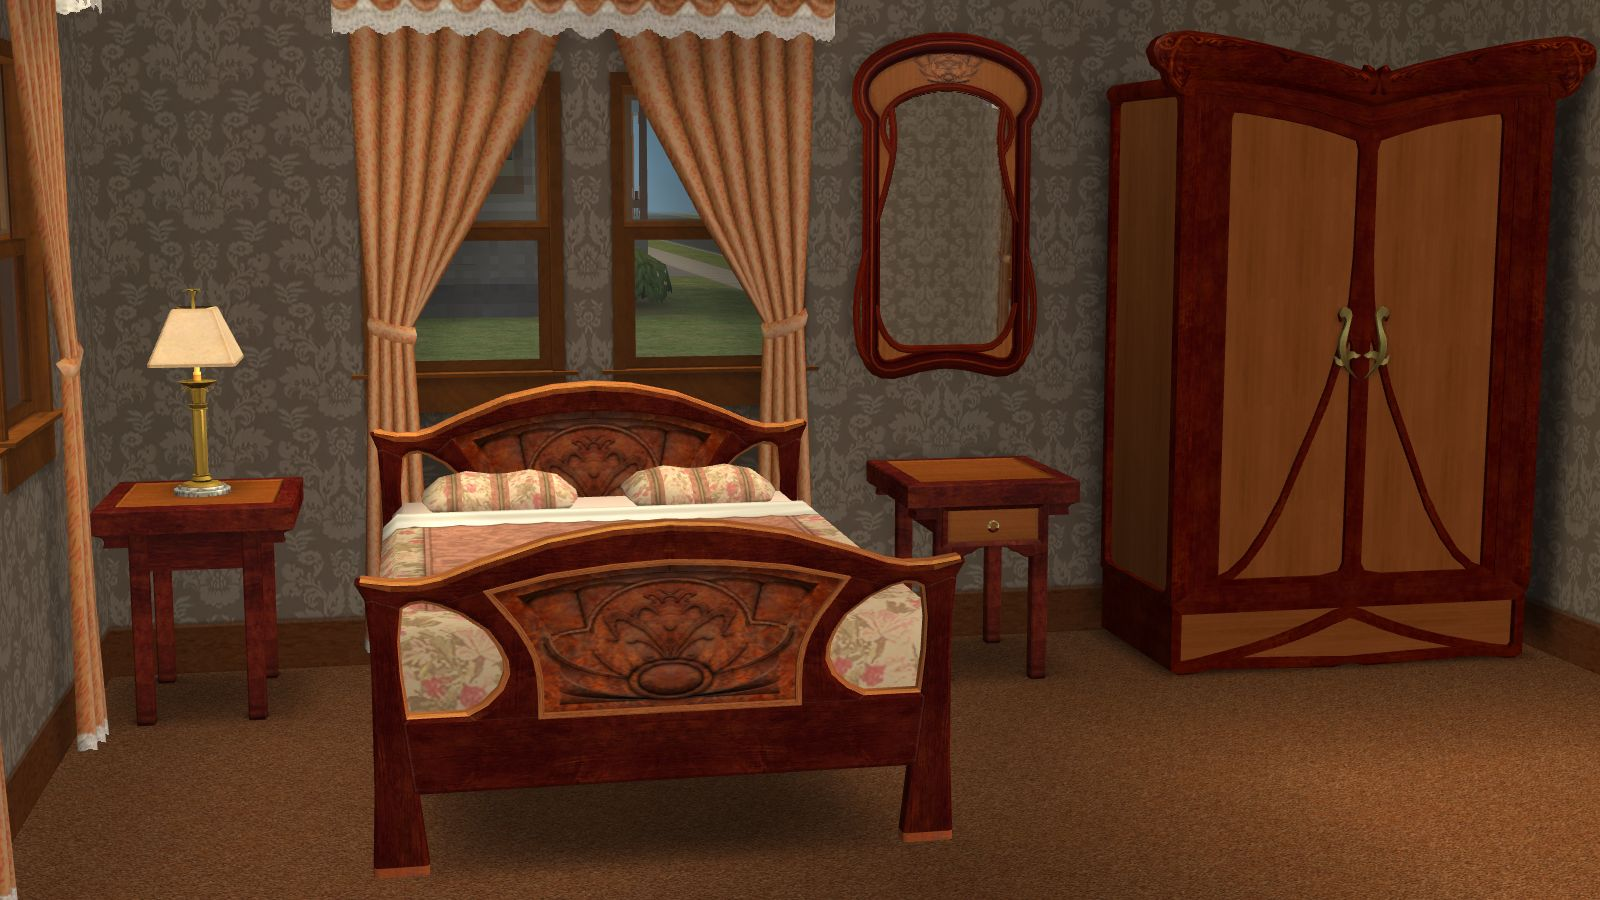 Mod The Sims - Recolors of Base Game Bedroom Furnitur in Art ...